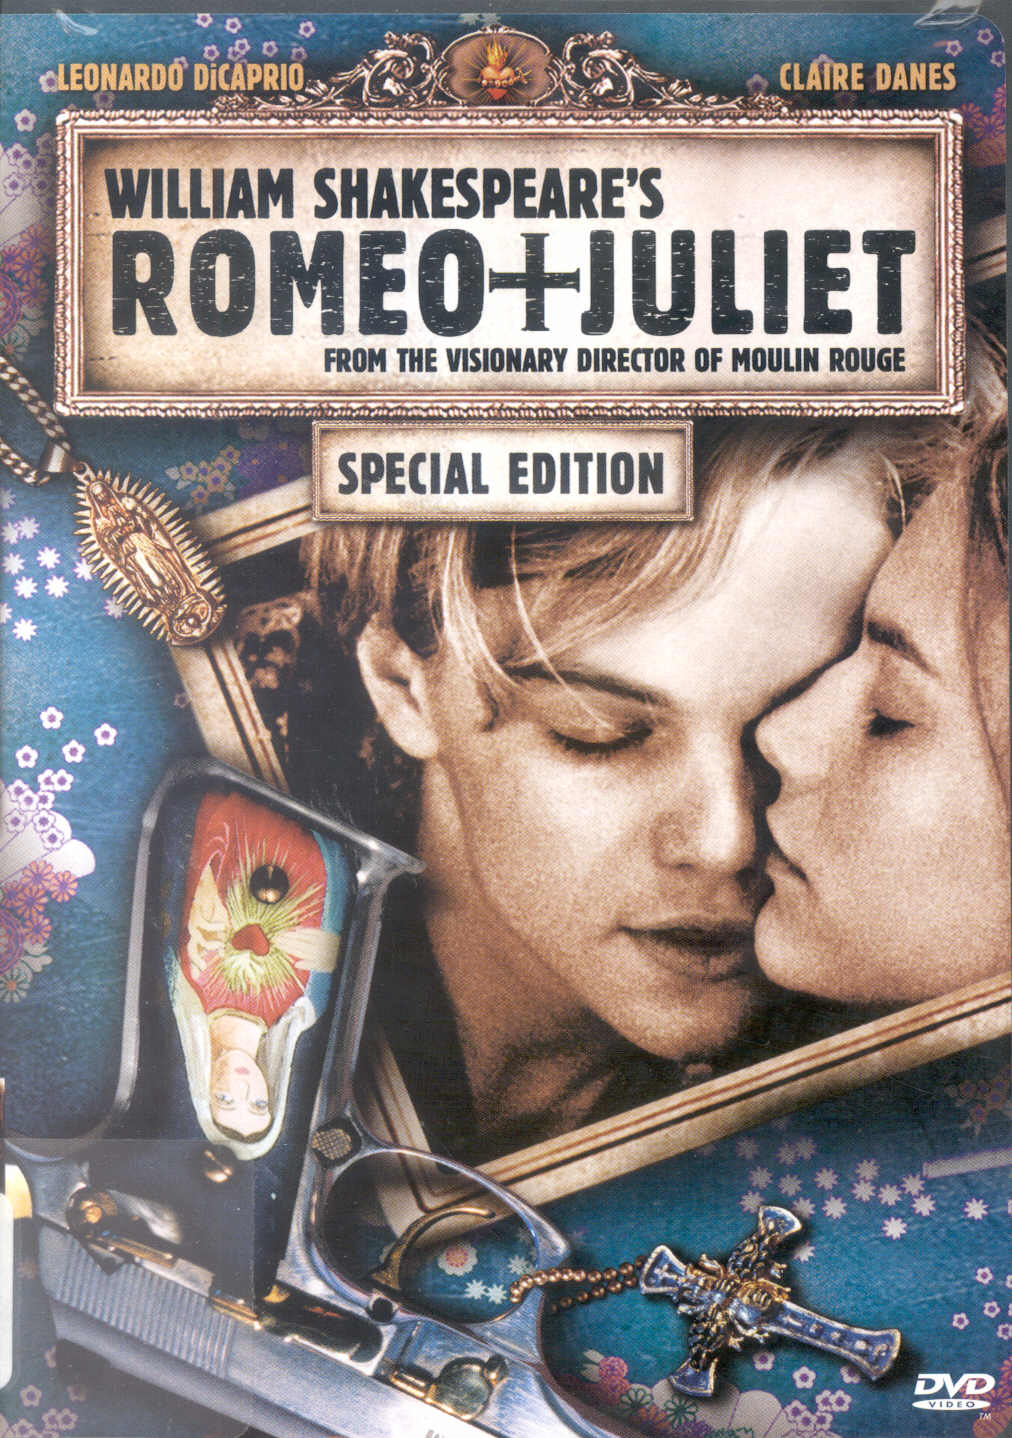 http://images.fanpop.com/images/image_uploads/Romeo---Juliet--1996--william-shakespeare-64456_1012_1438.jpg